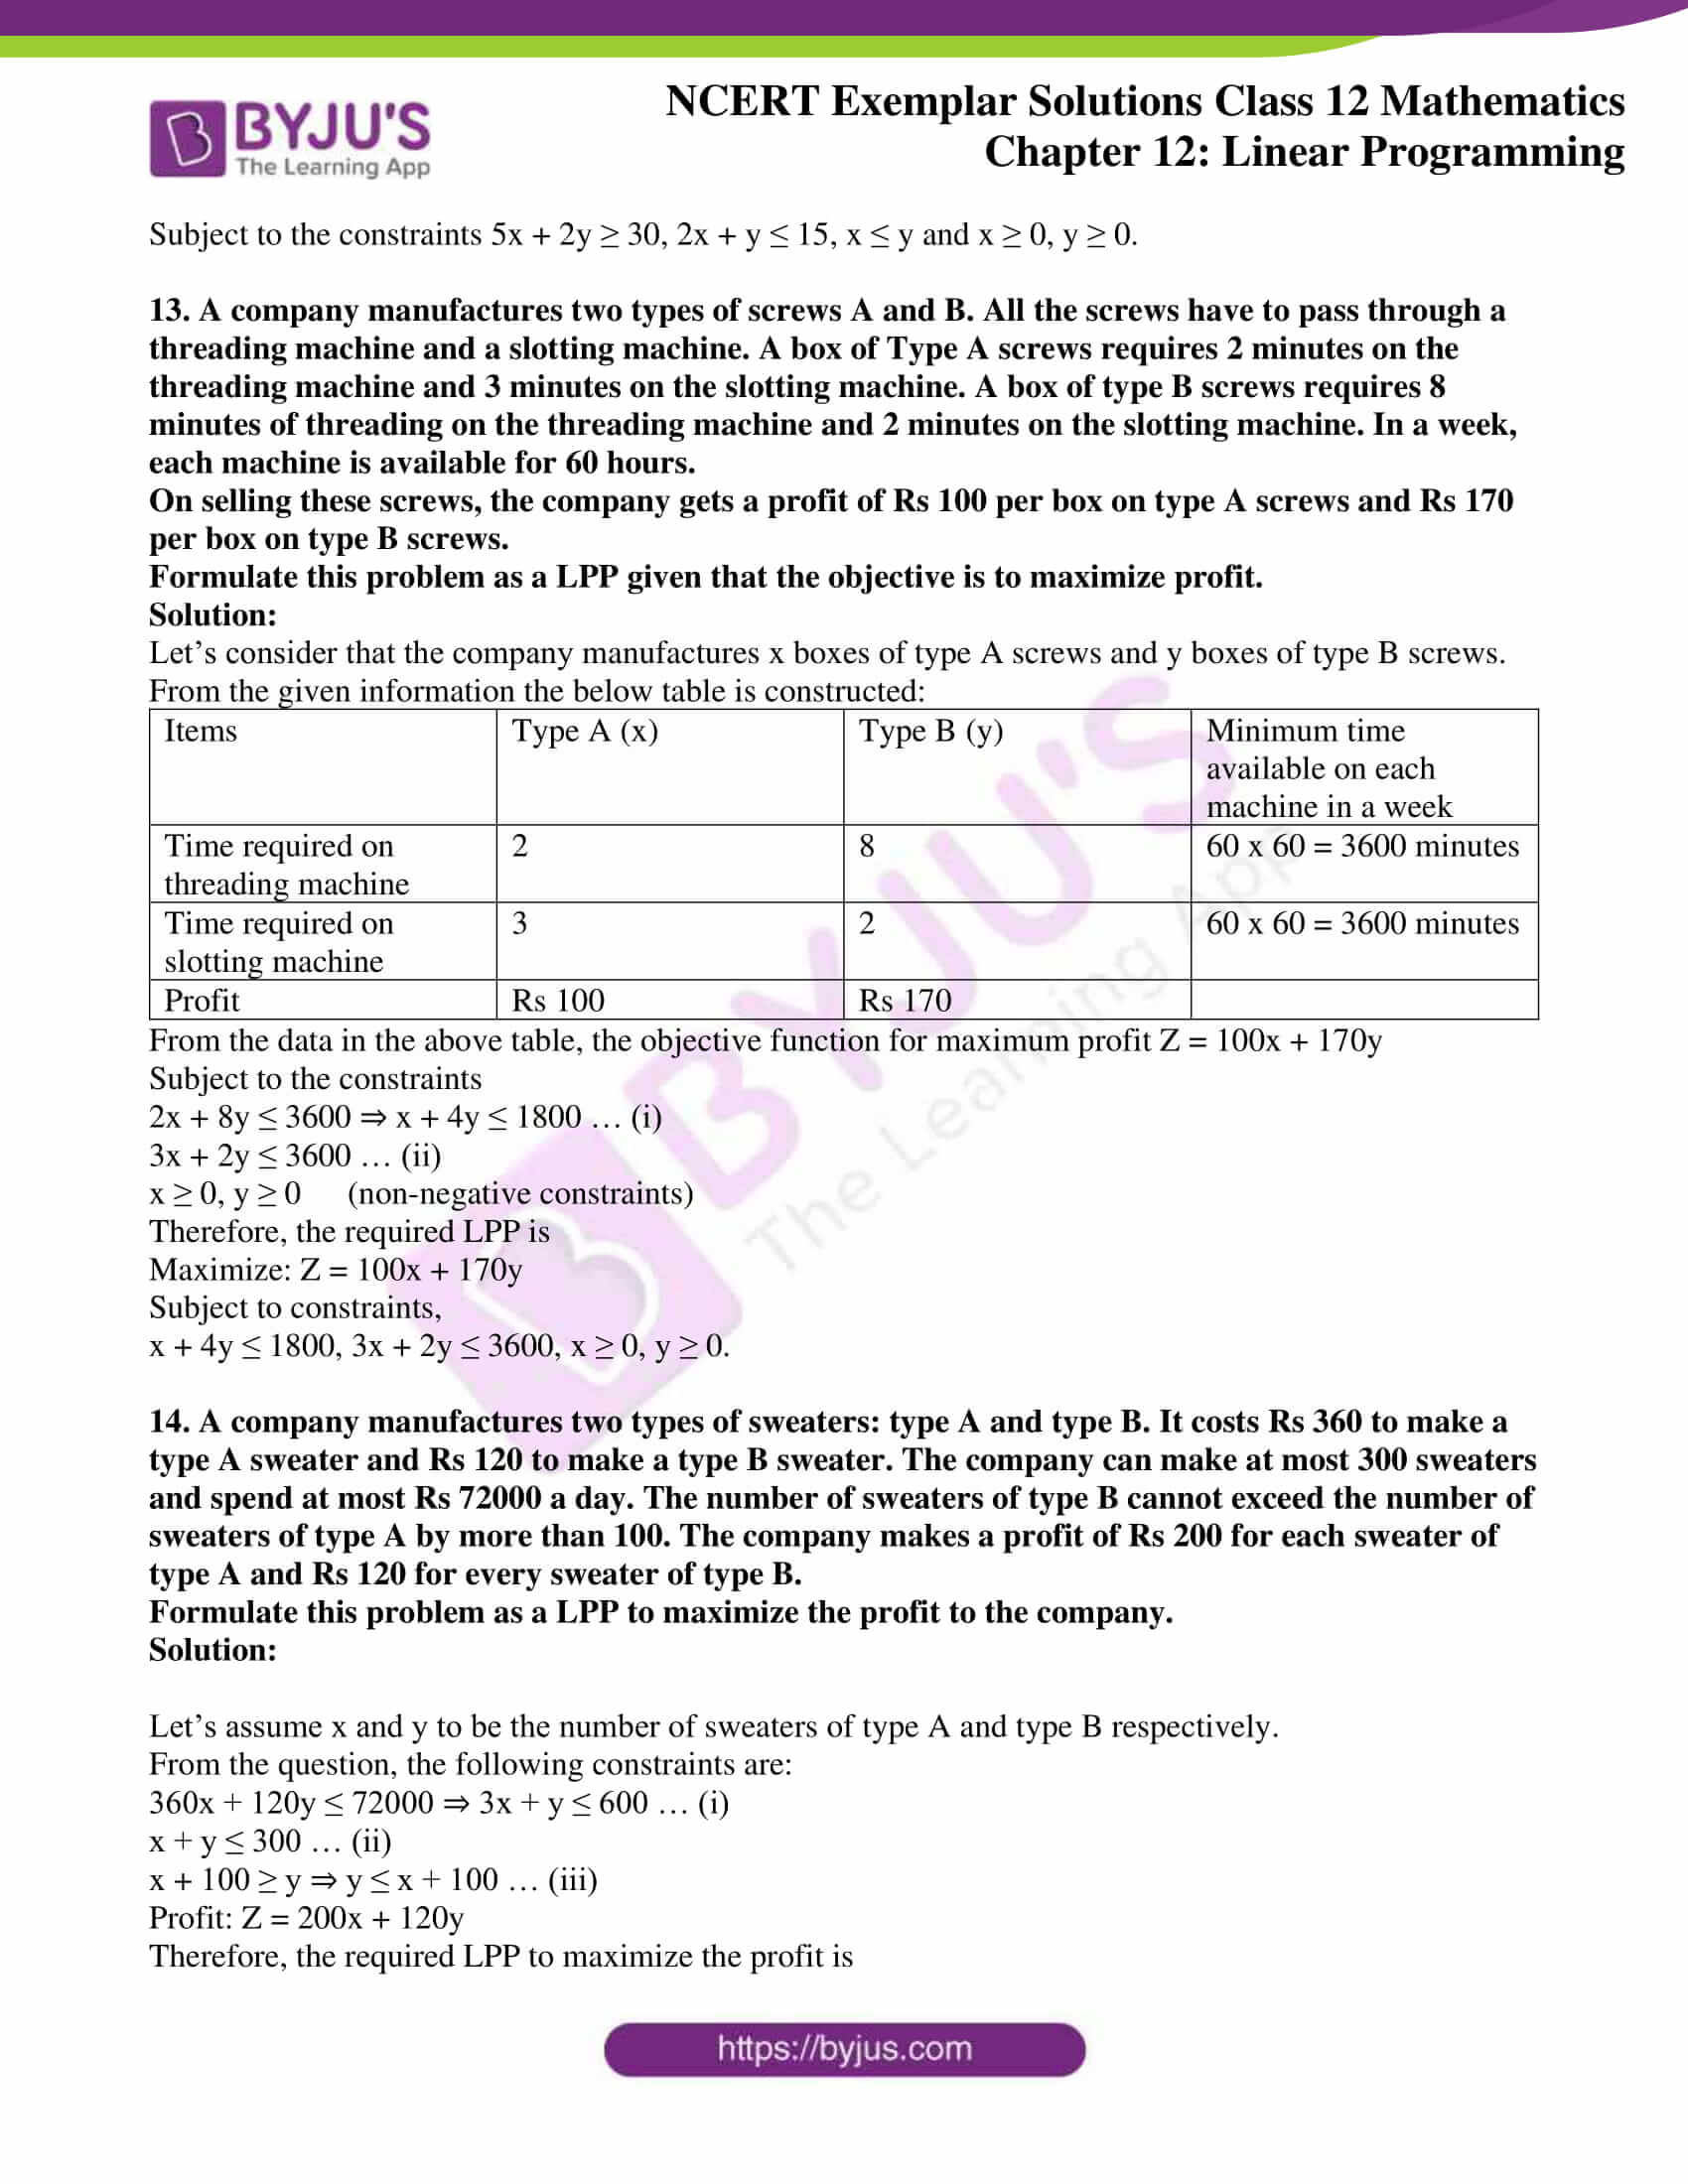 ncert exemplar sol class 12 mathematics chapter 12 08